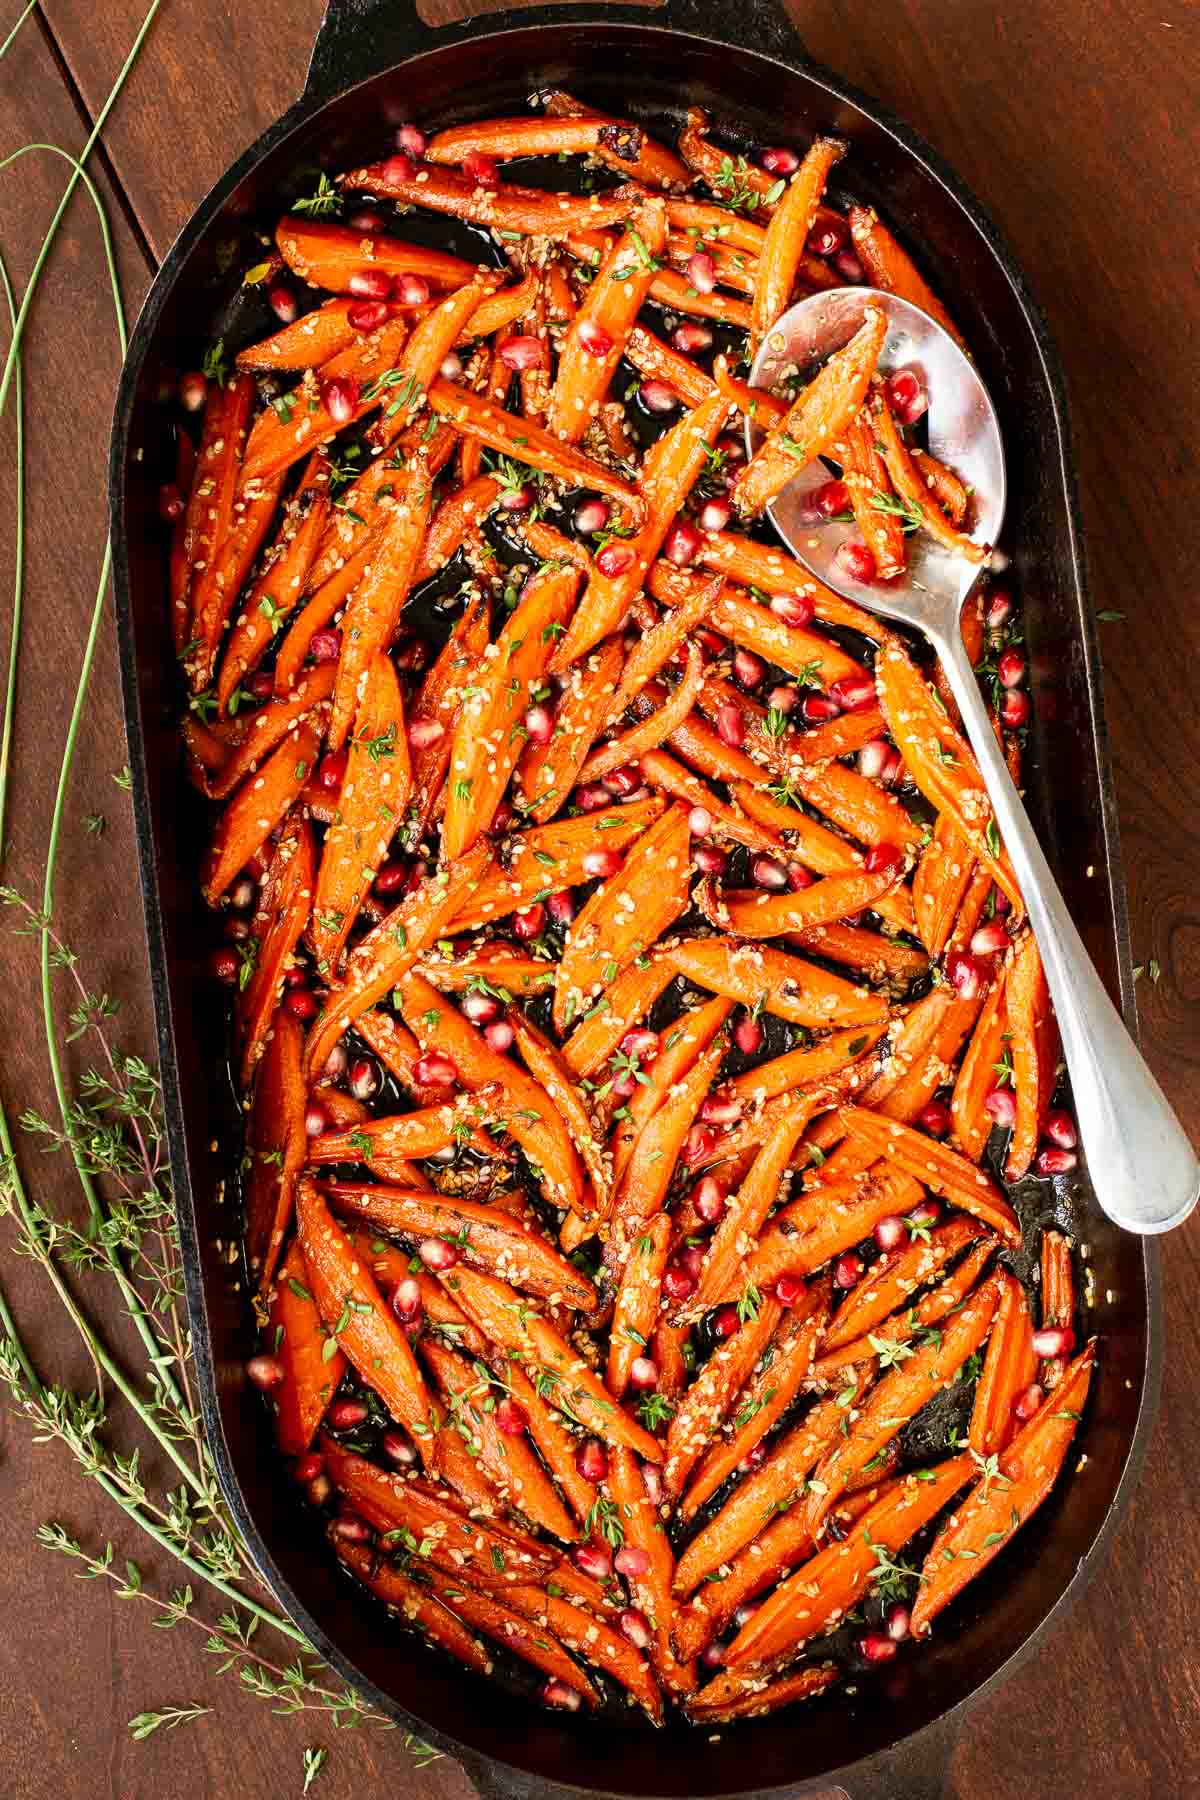 Overhead vertical photo of a cast iron pan filled with Honey Maple Roasted Carrots on a wood table.